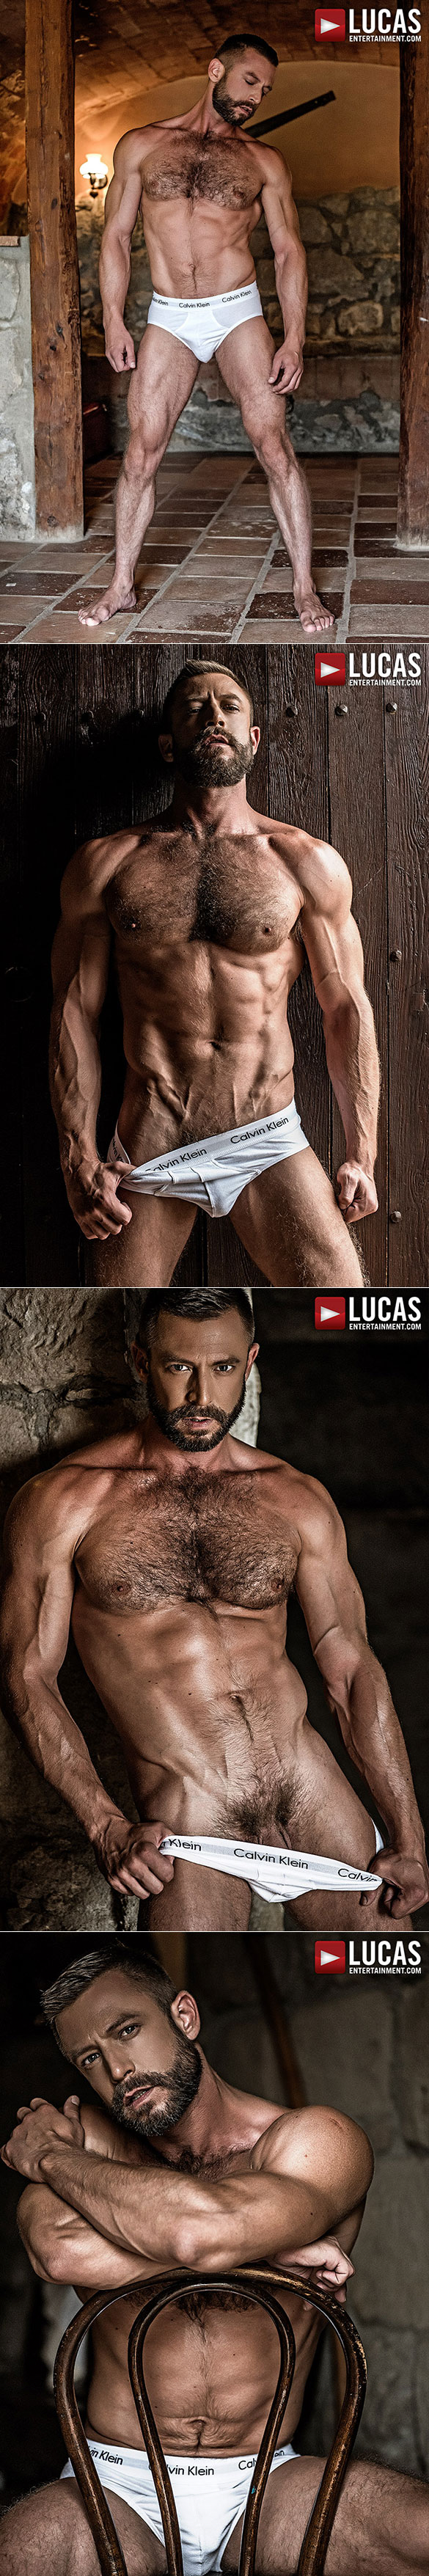 """Lucas Entertainment: Muscle daddy Bulrog tops Devin Franco in """"Bareback Auditions 05"""""""